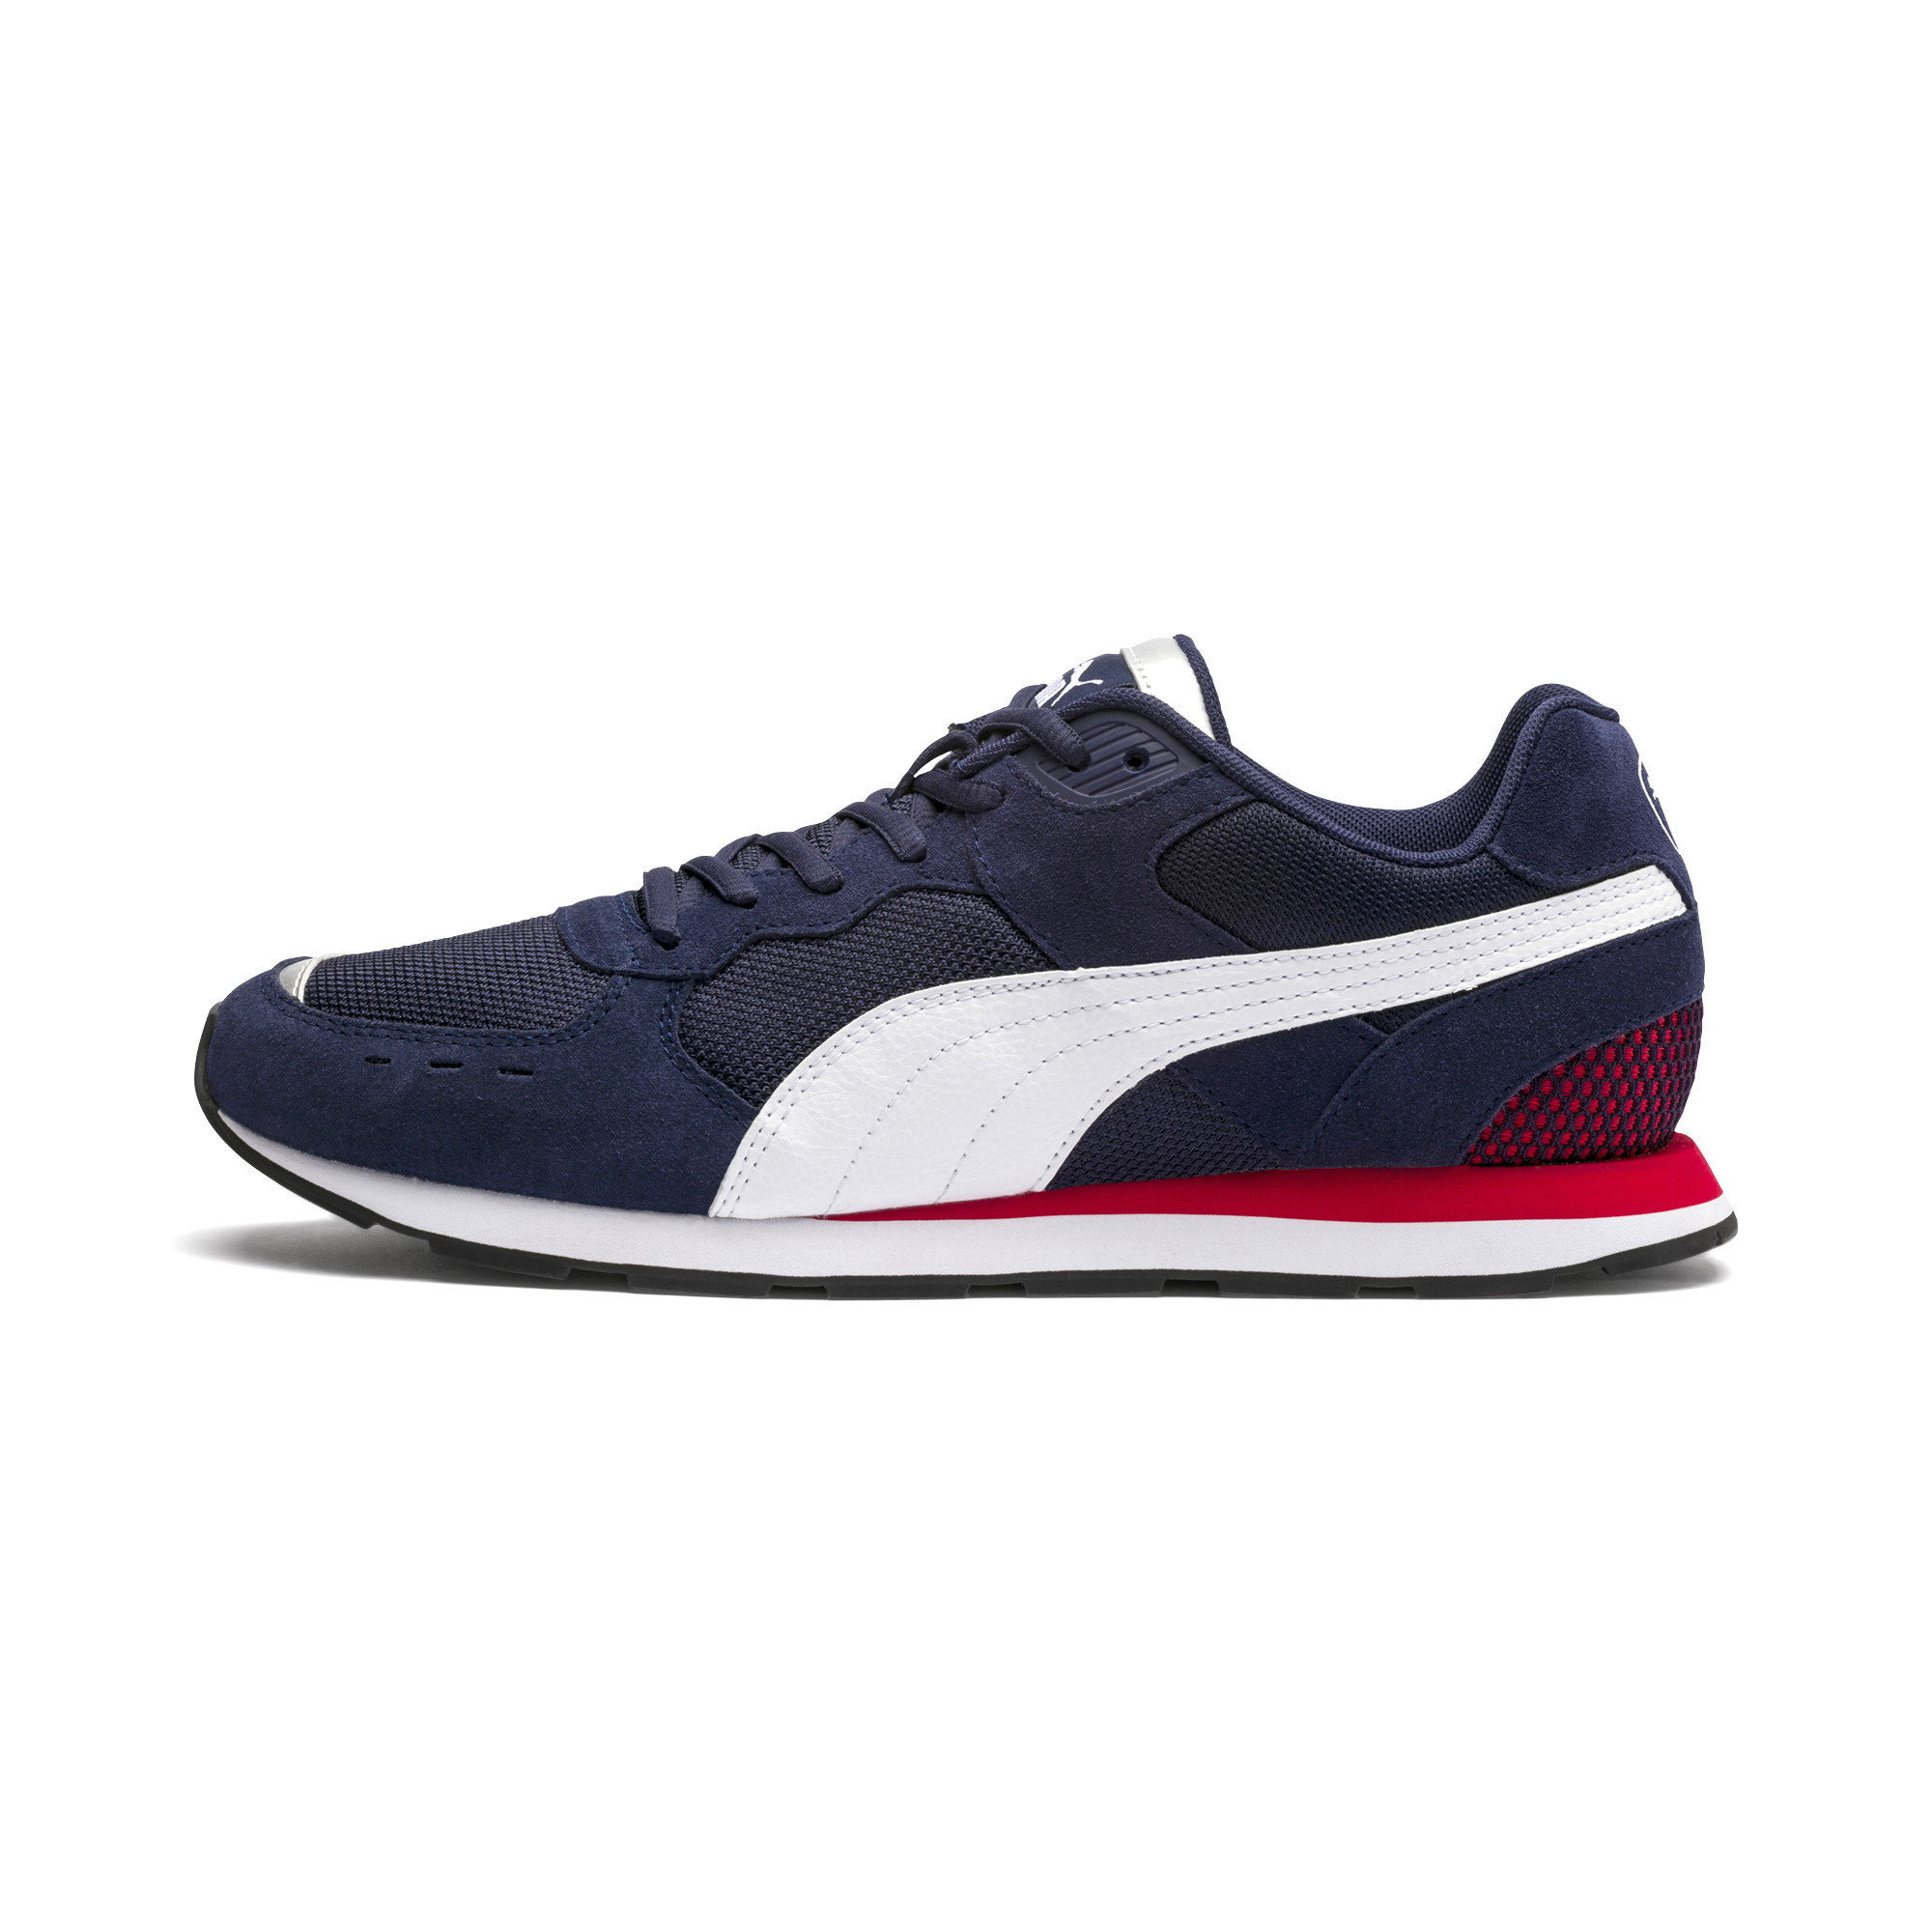 PUMA-Men-039-s-Vista-Sneakers thumbnail 22